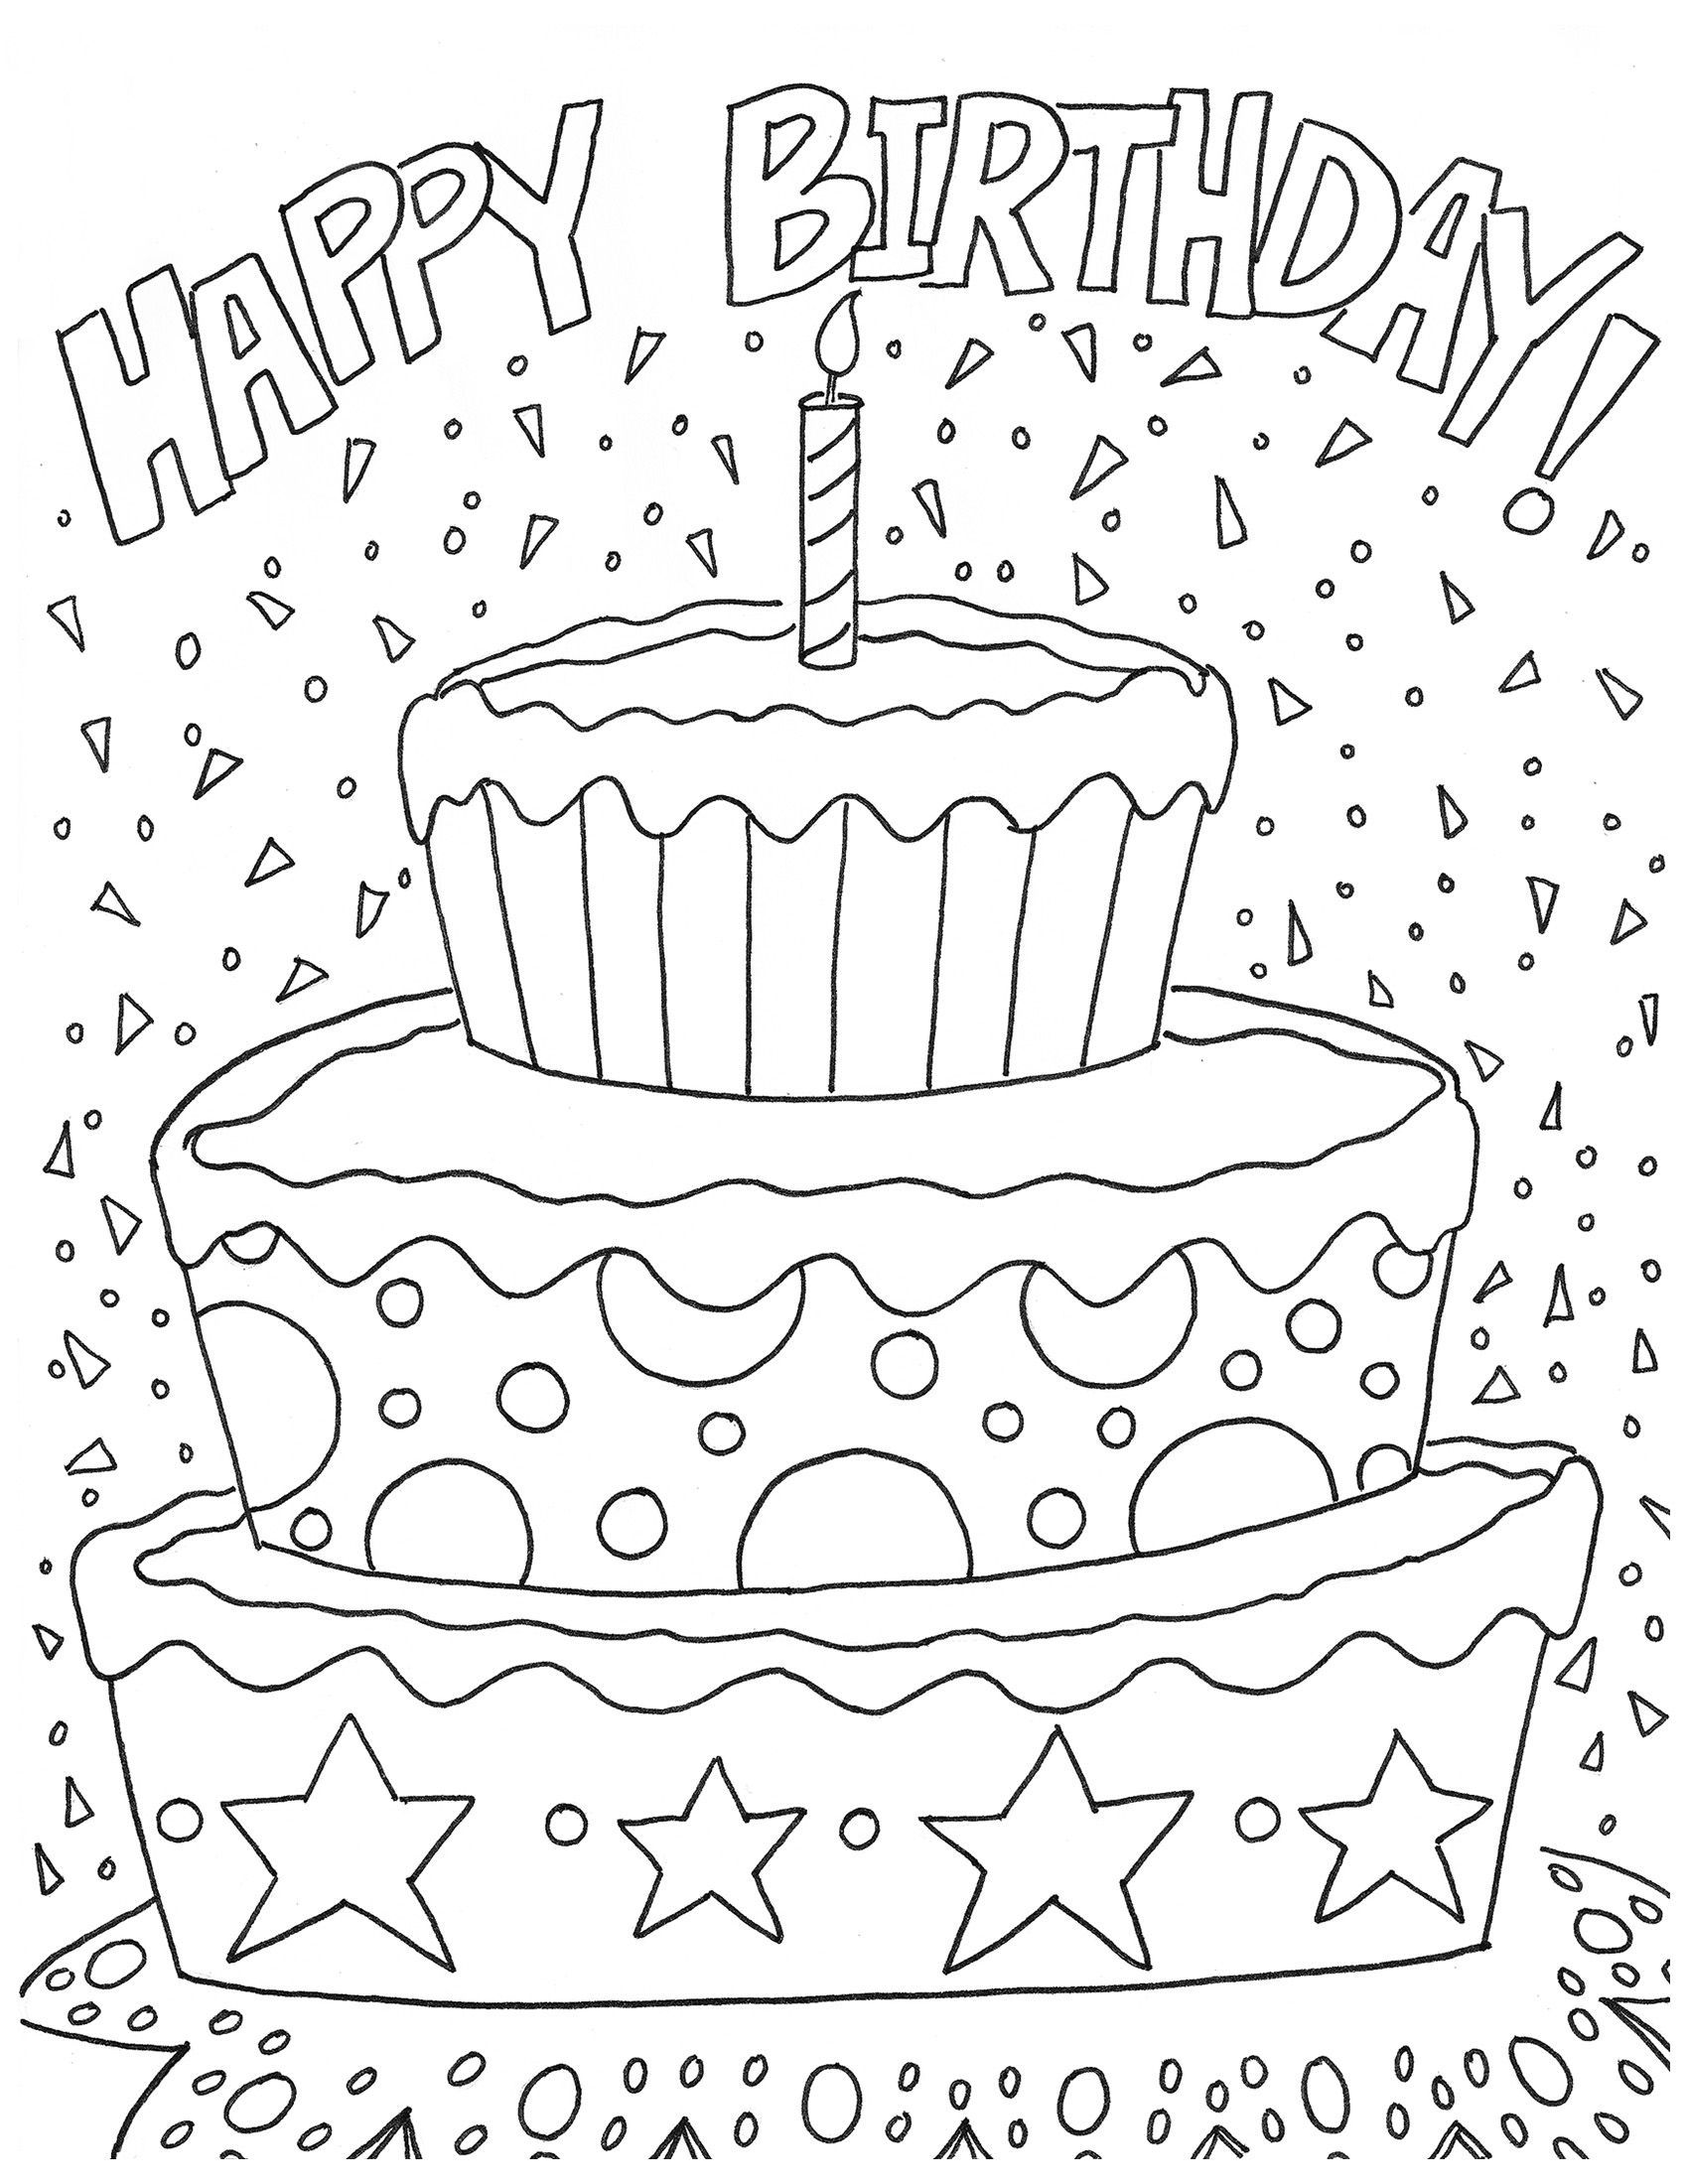 Birthday Coloring Pages Coloring Pages Happy Birthday Coloring Pages Holiday Mhw Coloring Birthday Cards Happy Birthday Coloring Pages Happy Birthday Printable